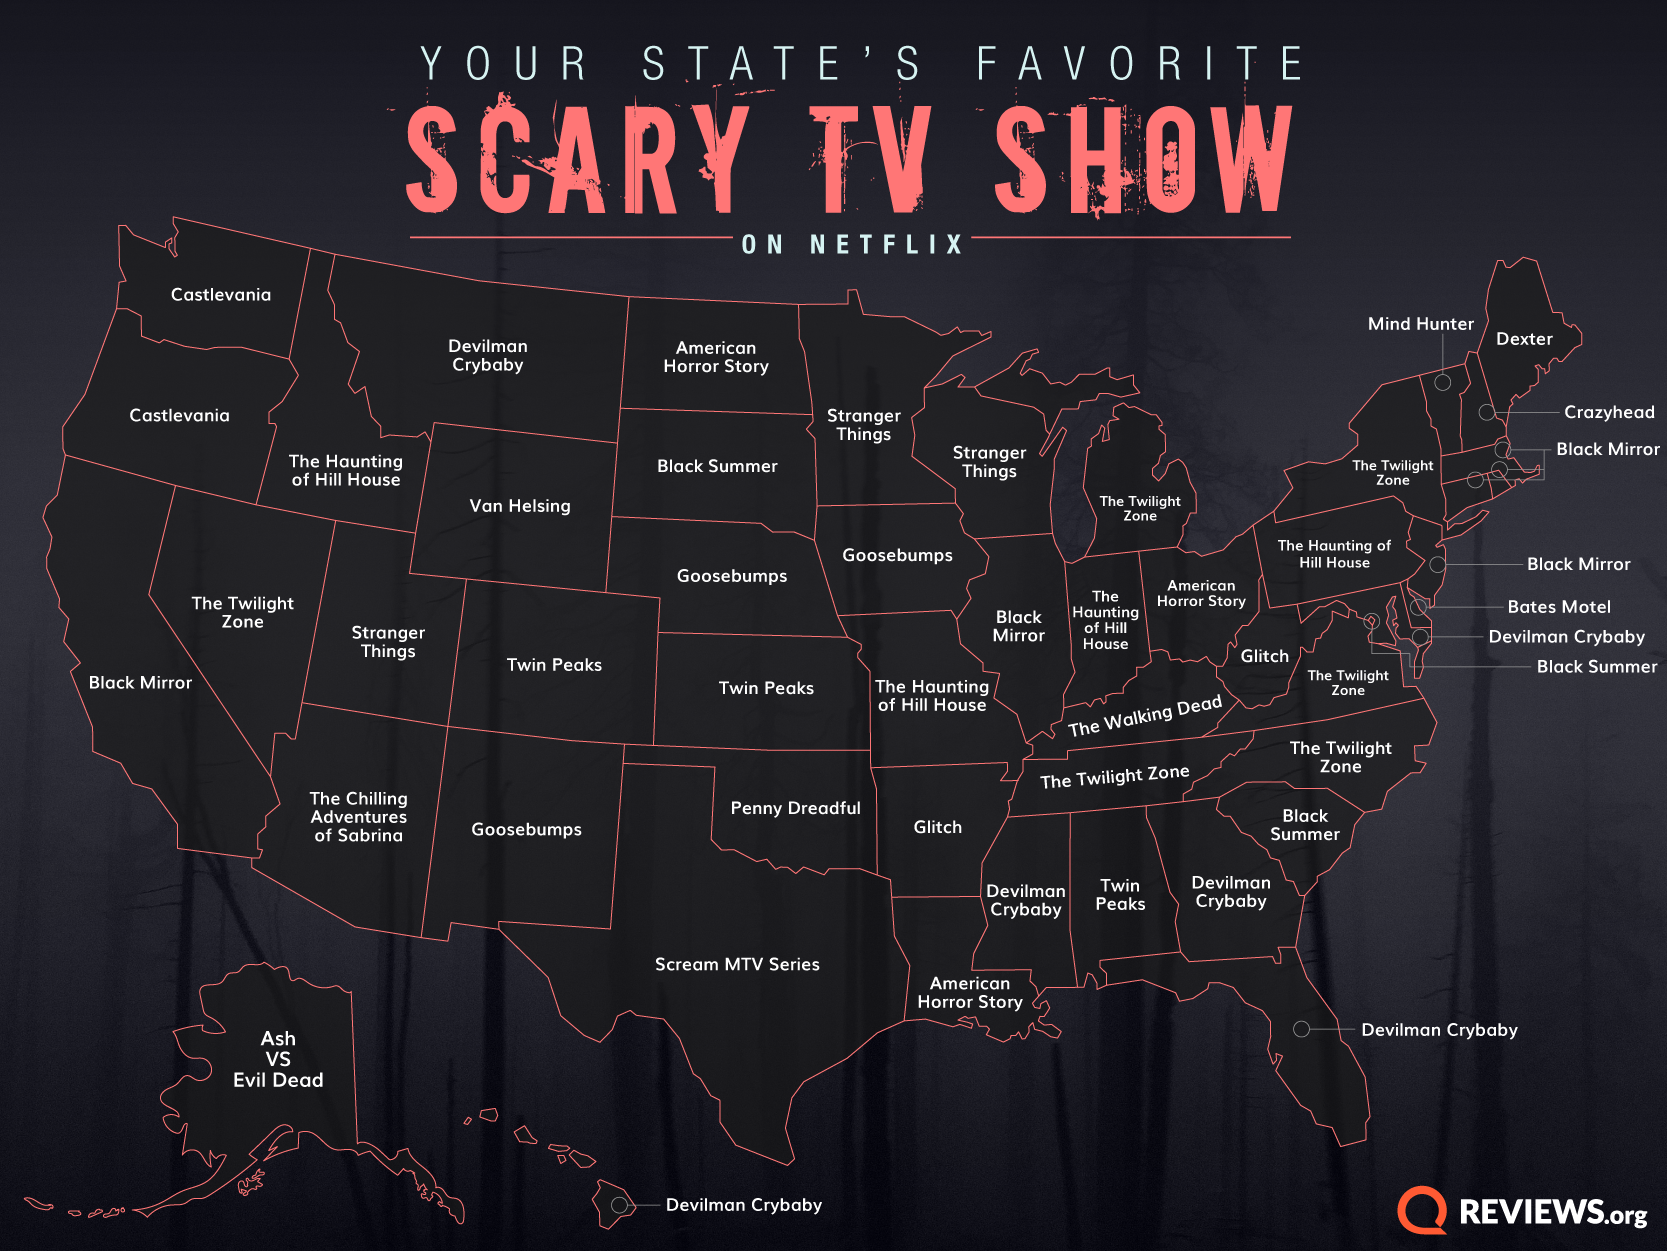 Map showing every state's favorite scary tv show on Netflix.